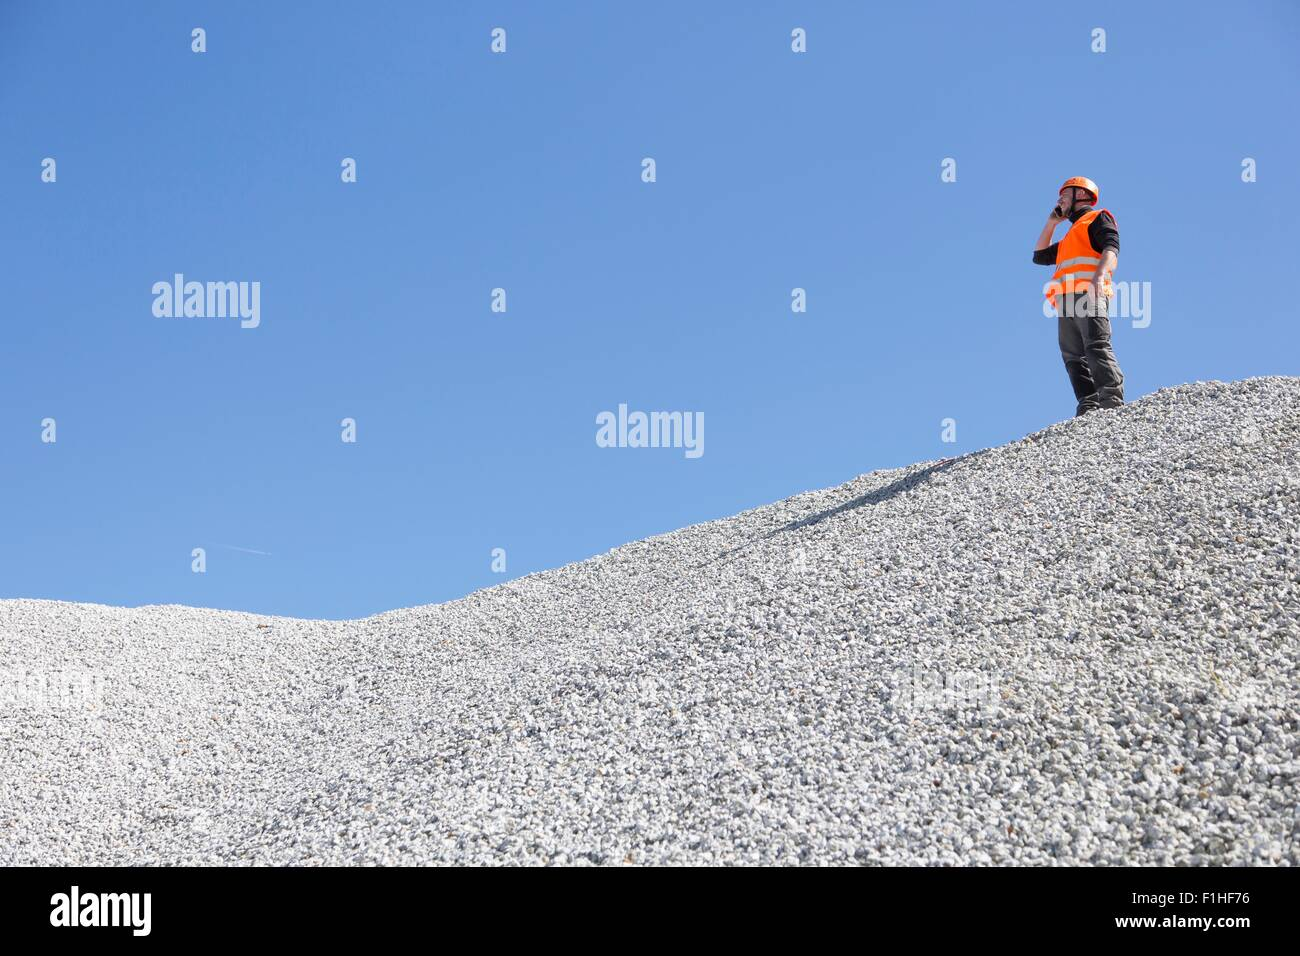 Quarry worker chatting on smartphone from quarry gravel mound - Stock Image